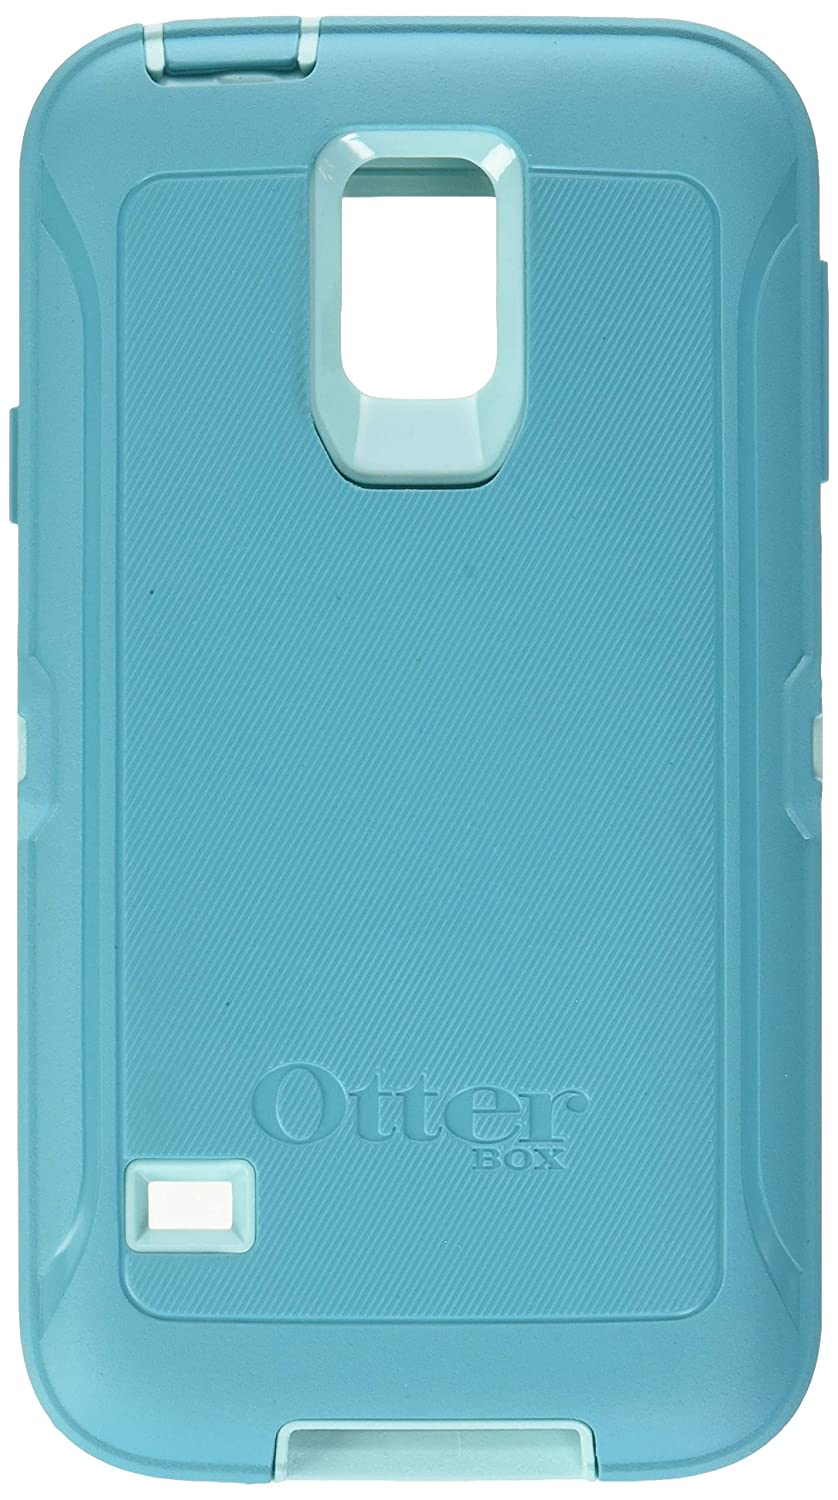 Rugged Protection Otterbox DEFENDER SERIES Case for Samsung Galaxy S5 - Bulk Packaging - (AQUA BLUE/LIGHT TEAL)